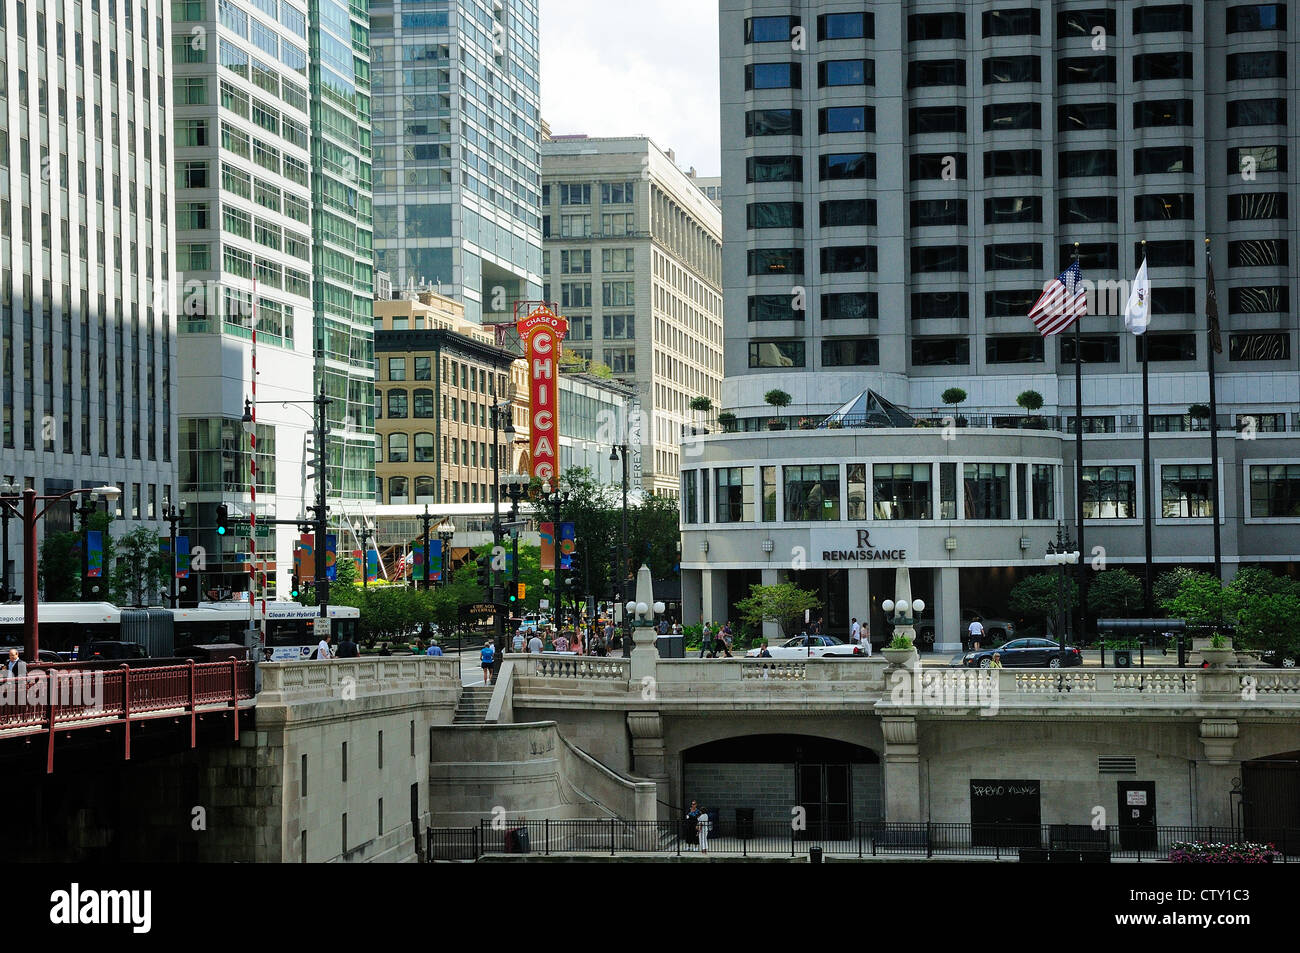 Chicago's State Street bridge. Renaissance Hotel on right. Chicago Theater sign. - Stock Image